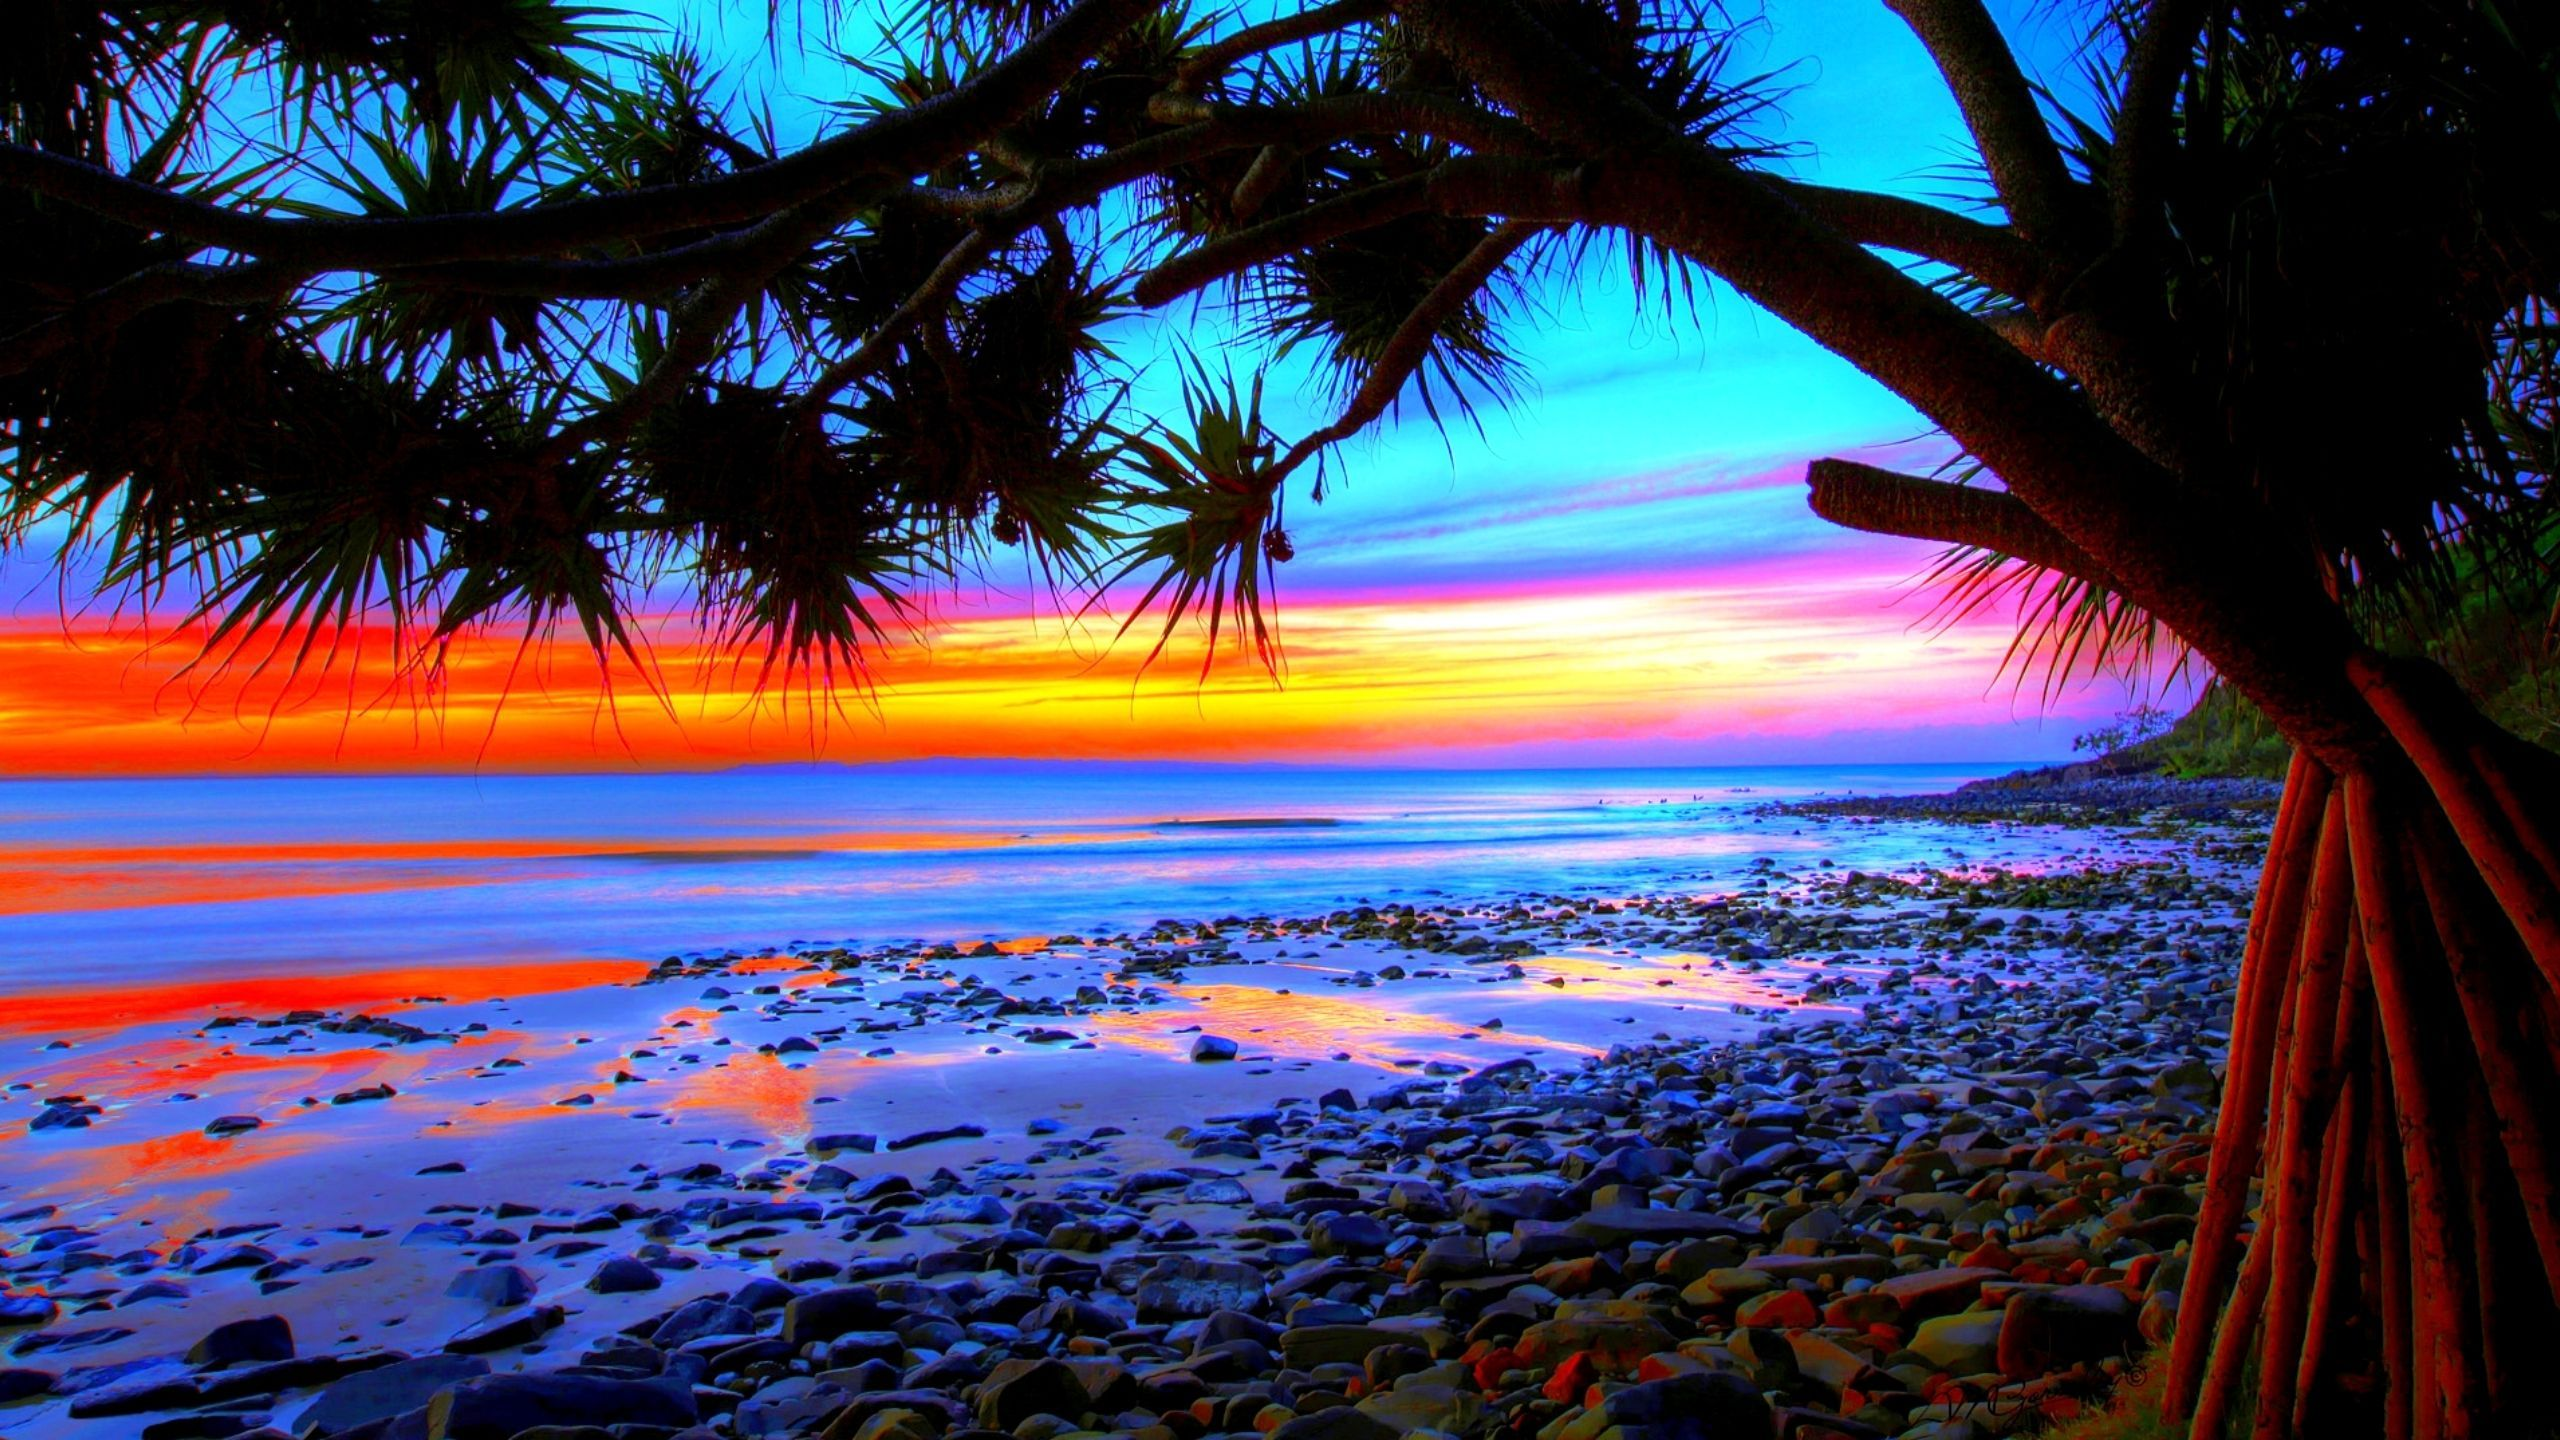 Colorful Beach Sunset Wallpapers Top Free Colorful Beach Sunset Backgrounds Wallpaperaccess